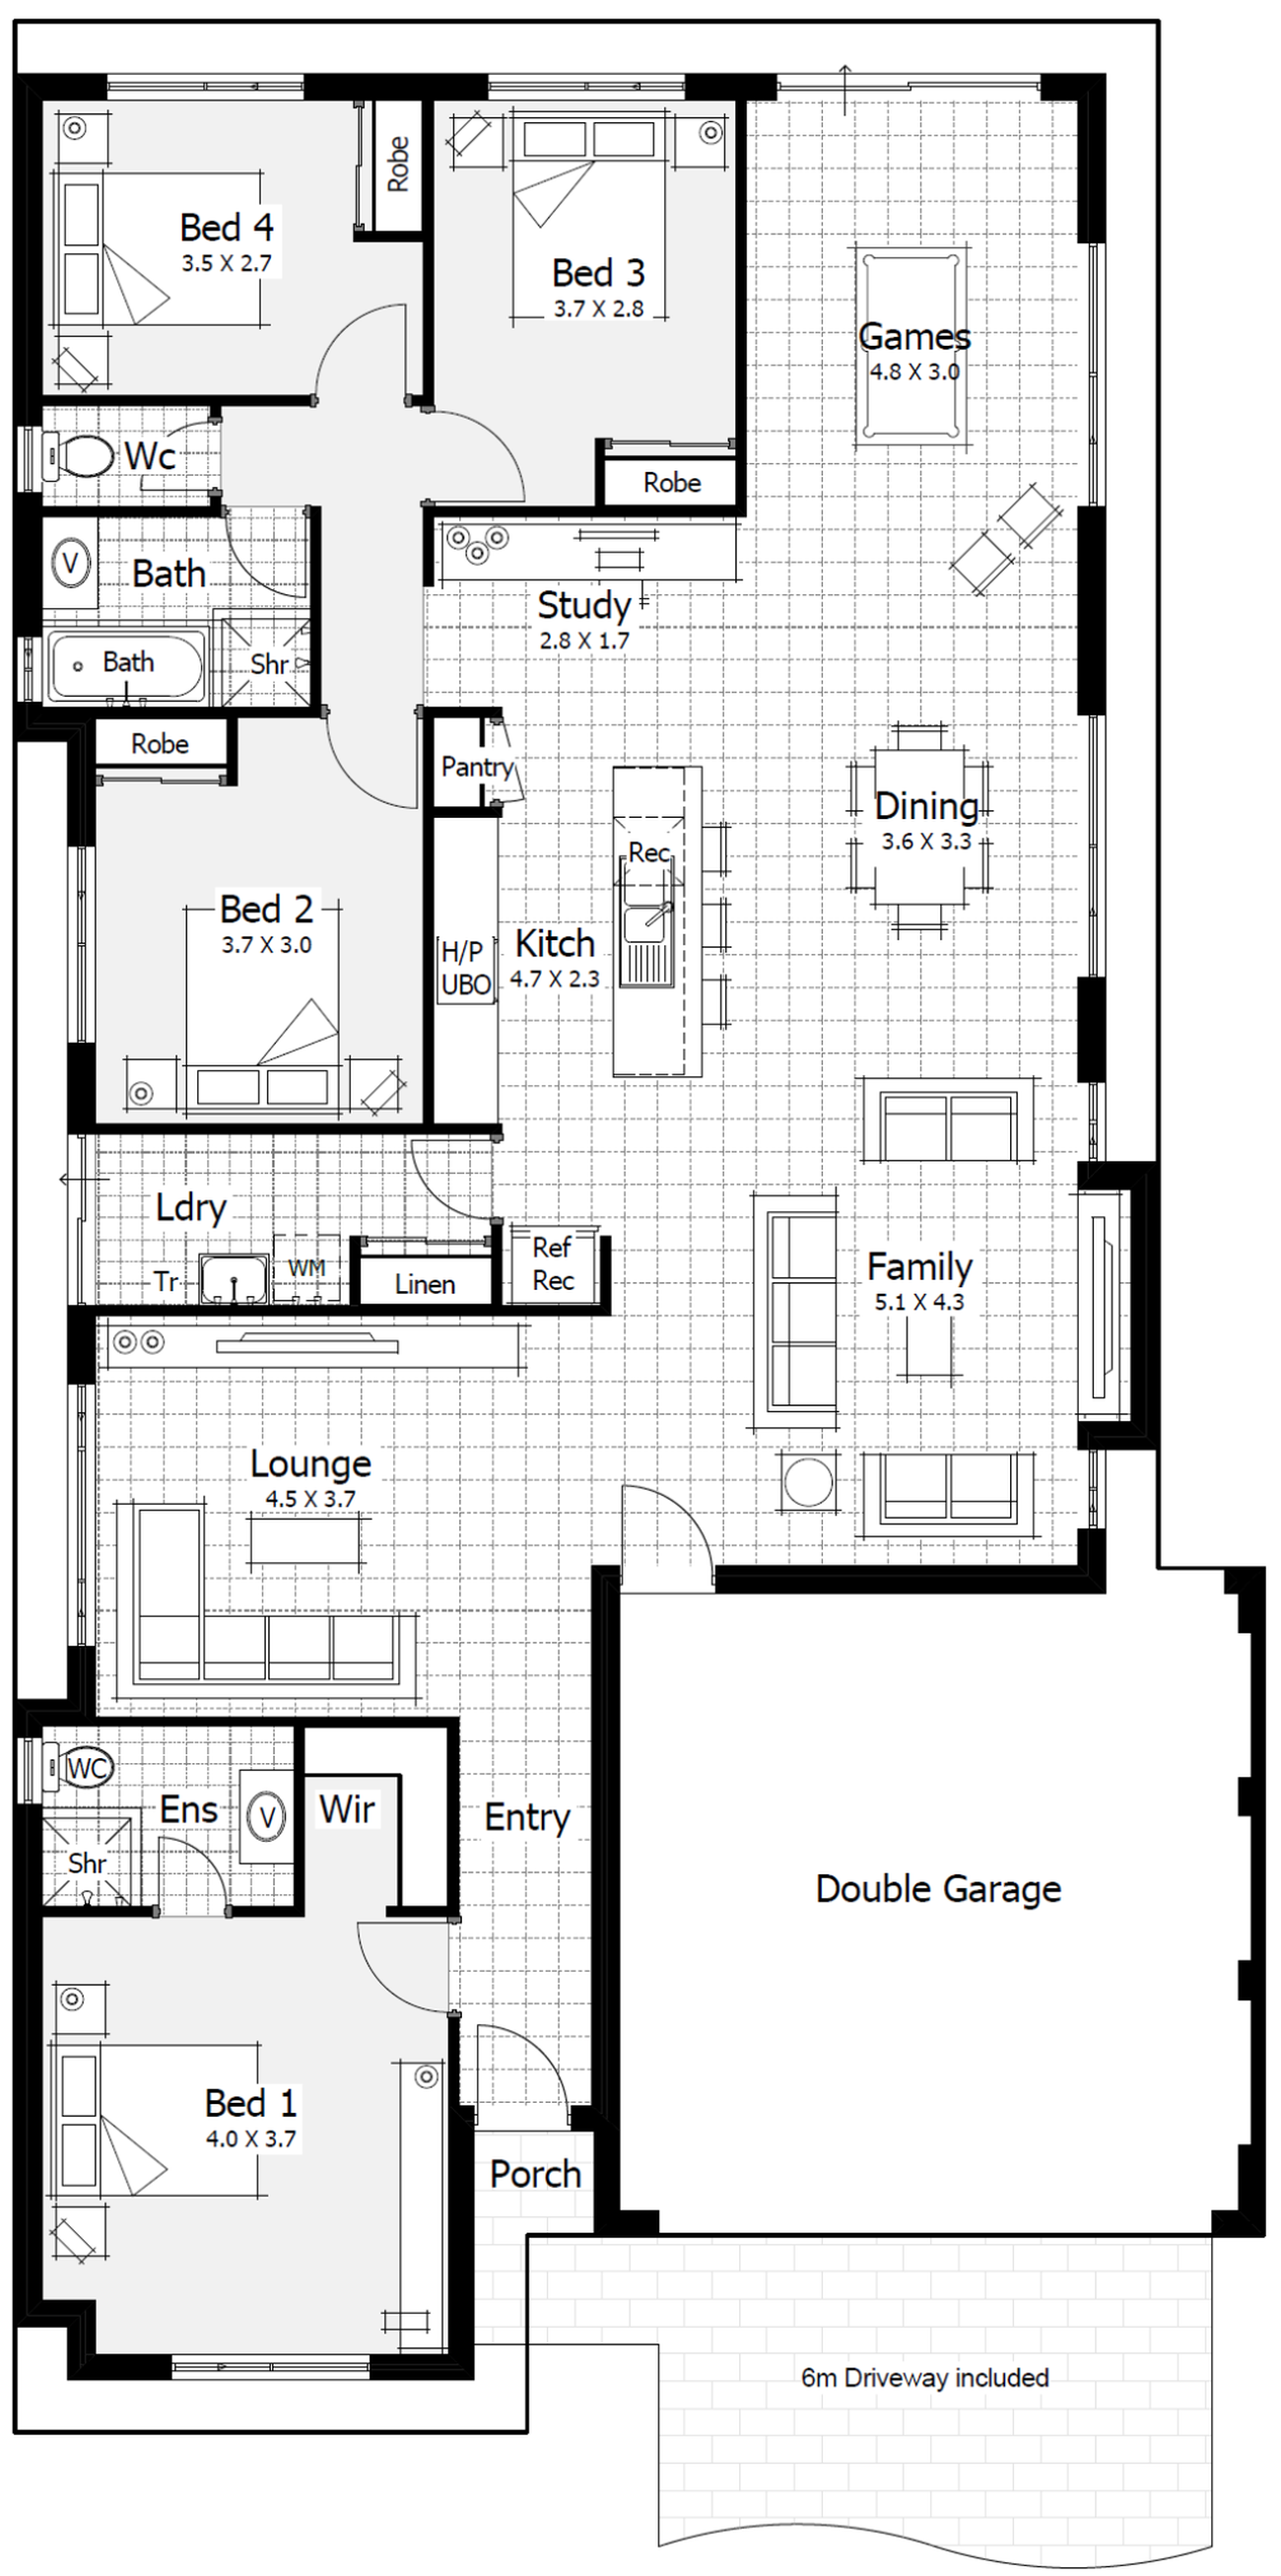 Nice 7 Metre Wide Home Designs Part - 7: 12 To 14 Metre Wide Home Designs | Home Buyers Centre